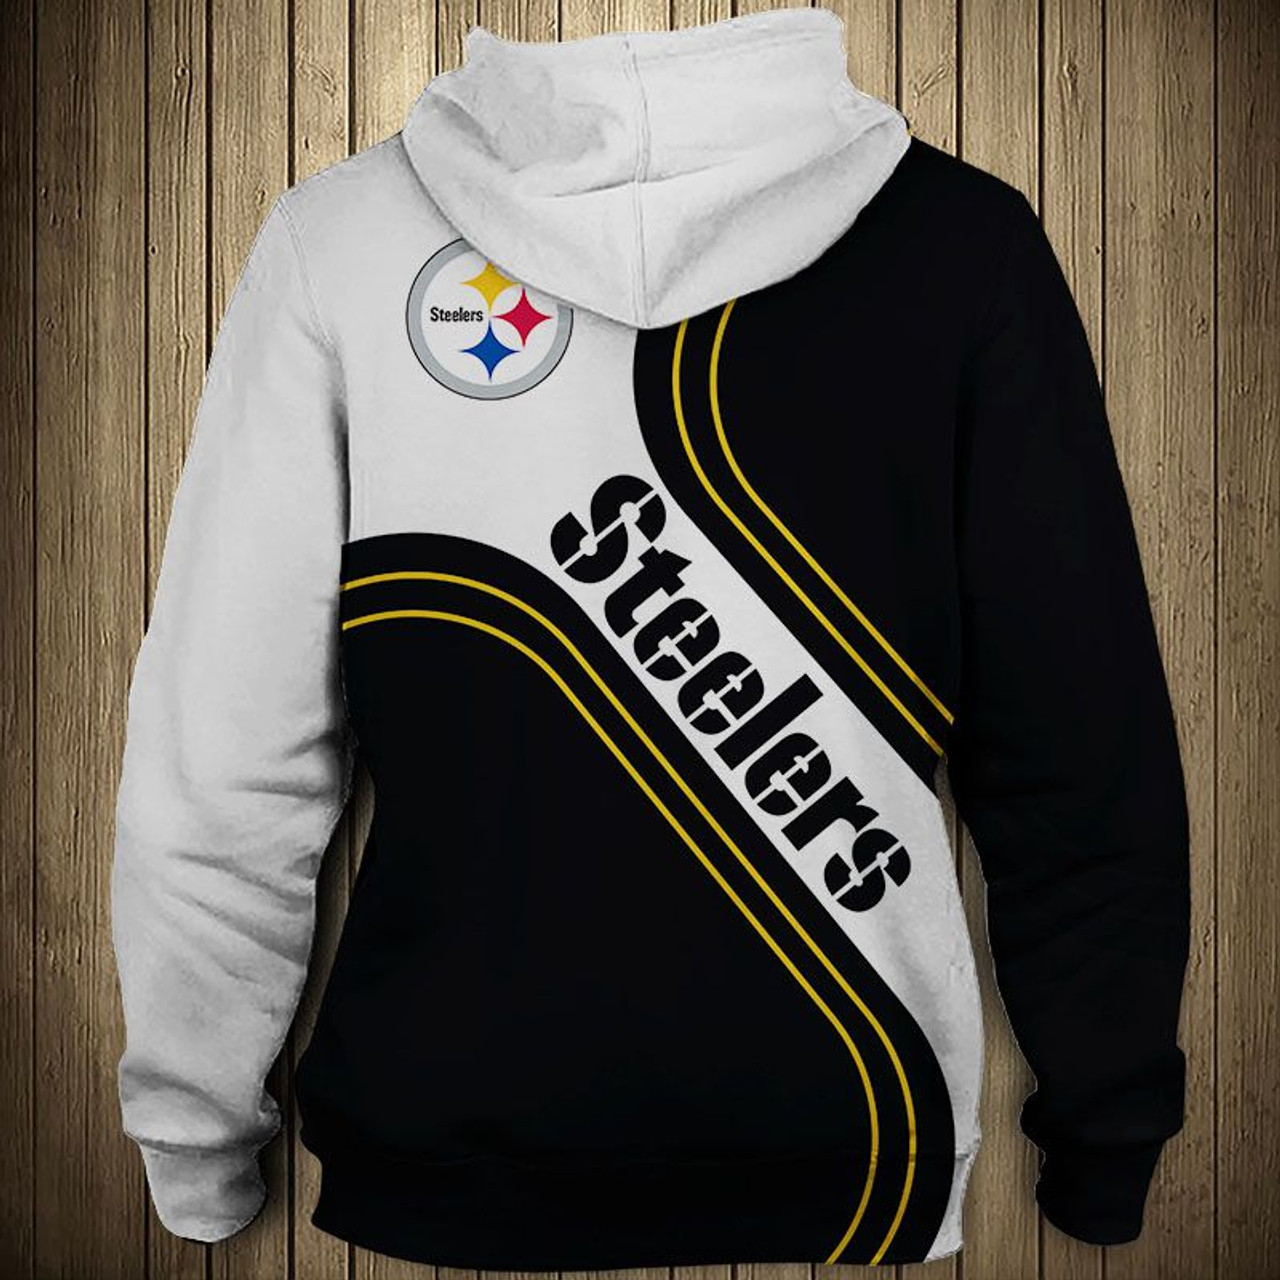 cheap for discount a93b7 6588a **(OFFICIAL-NEW-N.F.L.PITTSBURGH-STEELERS-TEAM-PULLOVER-HOODIES/NEW-CUSTOM-3D-GRAPHIC-PRINTED-DOUBLE-SIDED-DESIGN/ALL-OVER-OFFICIAL-CLASSIC-STEELERS-L...